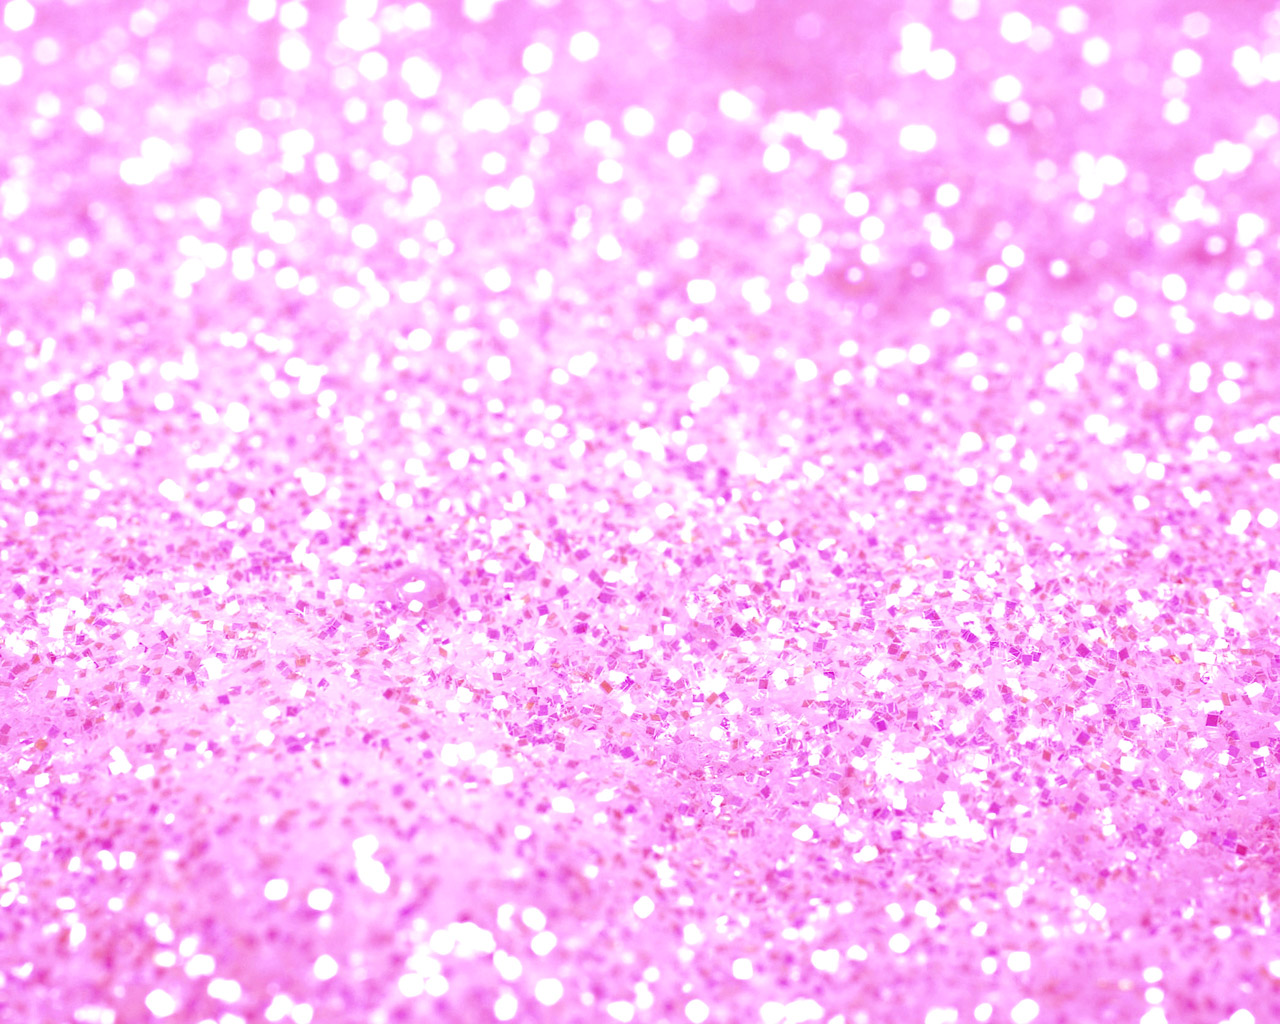 Pink Glitter Backgrounds | PixelsTalk.Net